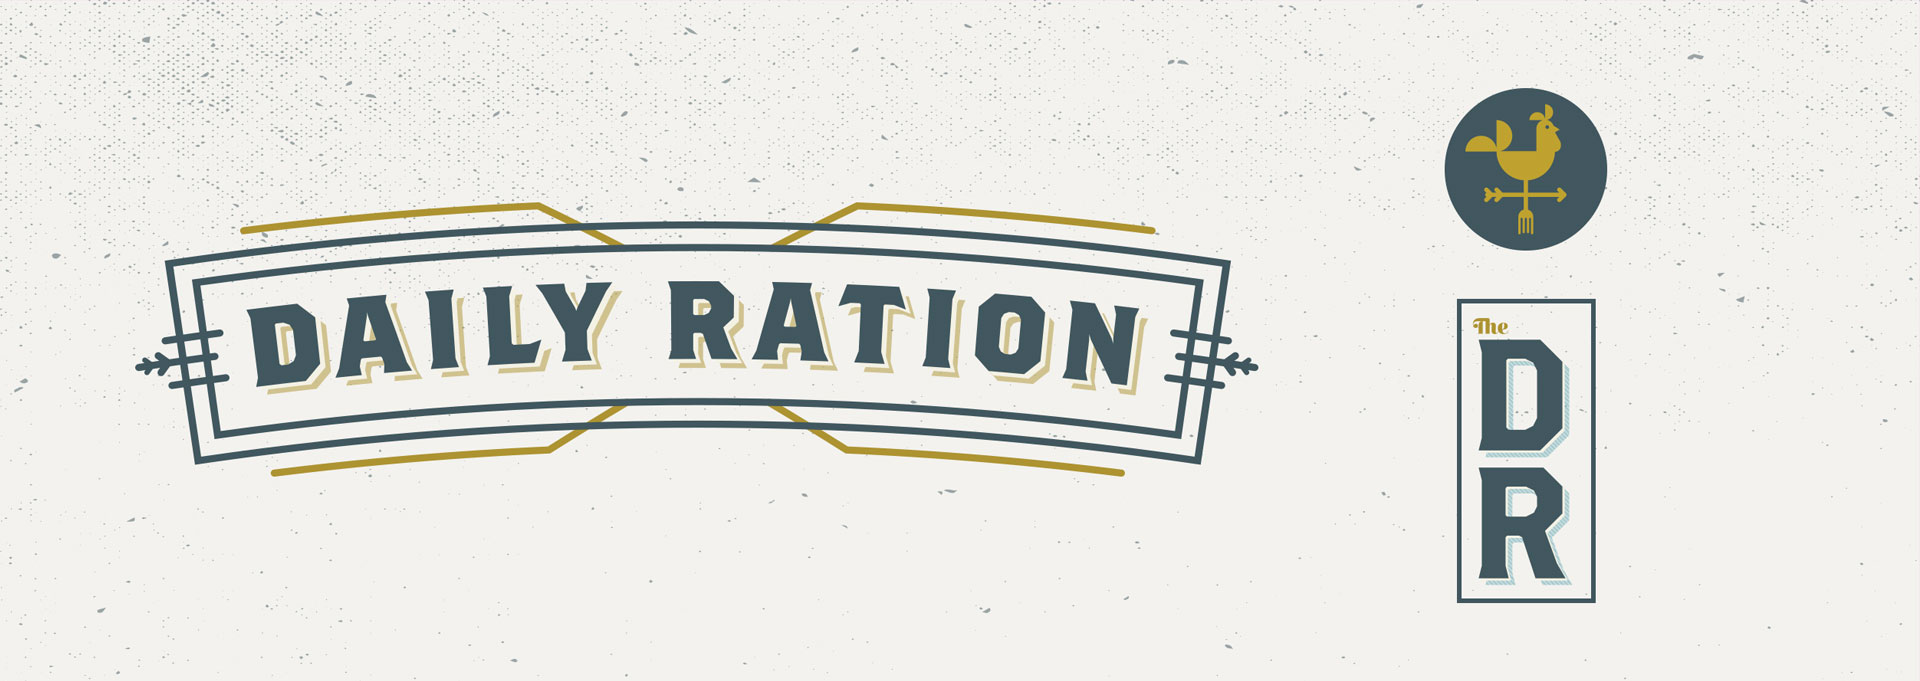 Tiny Giant - The Daily Ration - Brand Identity